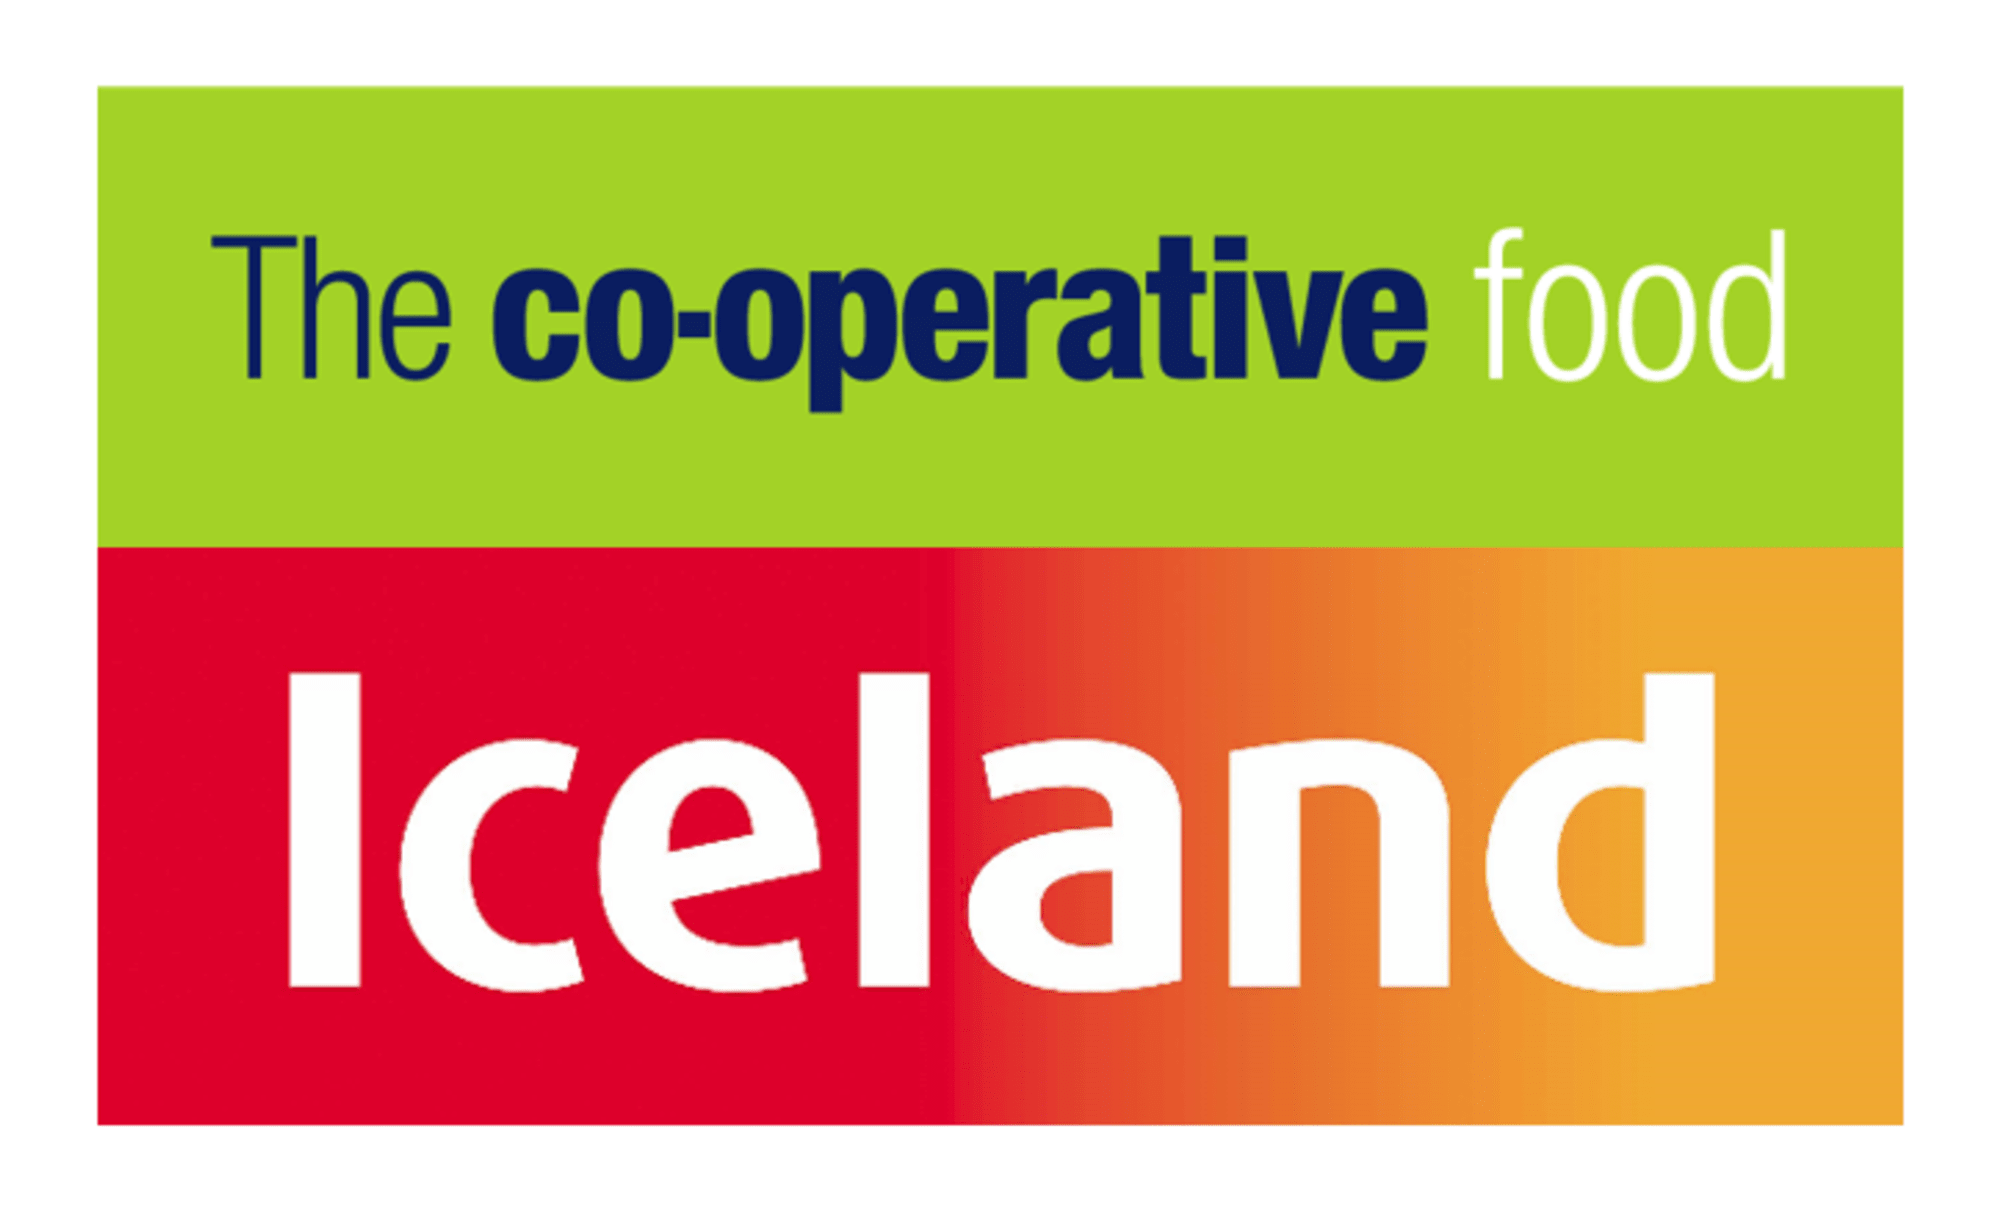 Background Image for Open Supermarkets – Now including Co-op Societies and Iceland